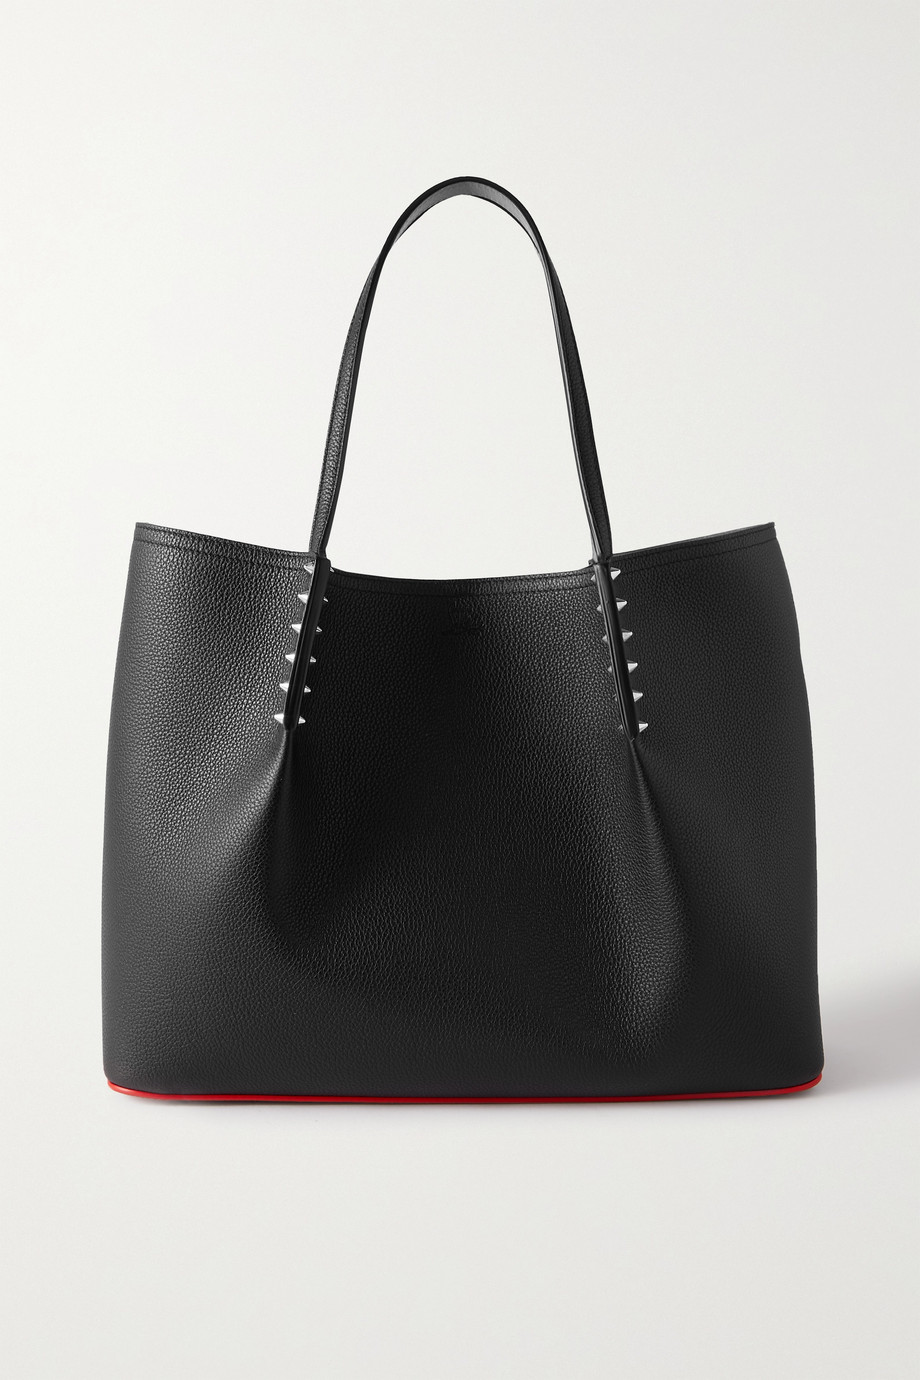 Christian Louboutin Cabarock spiked textured-leather tote